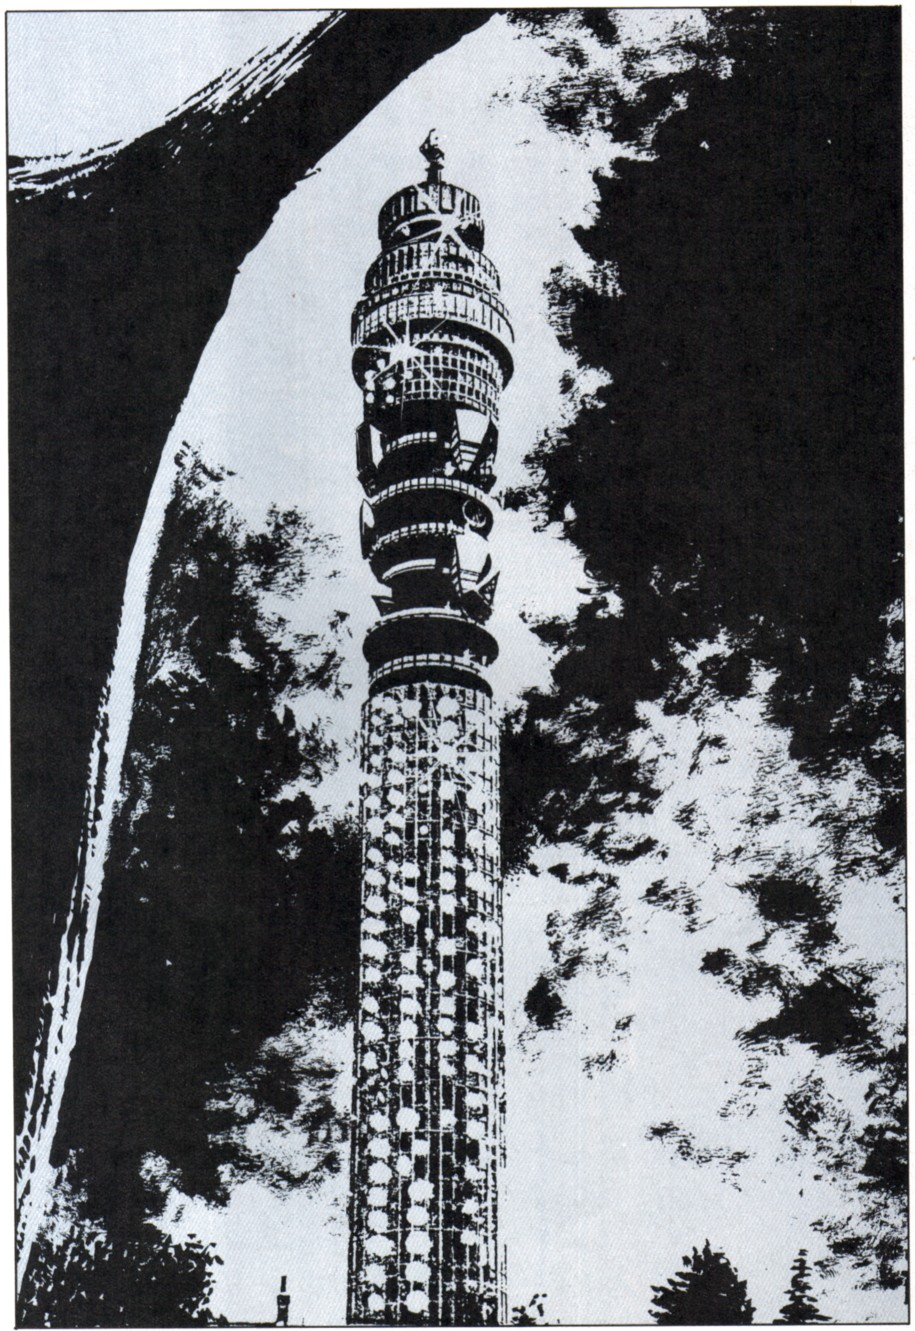 One of David Lloyd's woodcut-style pieces from 1988's V For Vendetta, in which Moore re-imagined the BT Tower as a surveillance HQ for the fascist British government of far-off 1997.